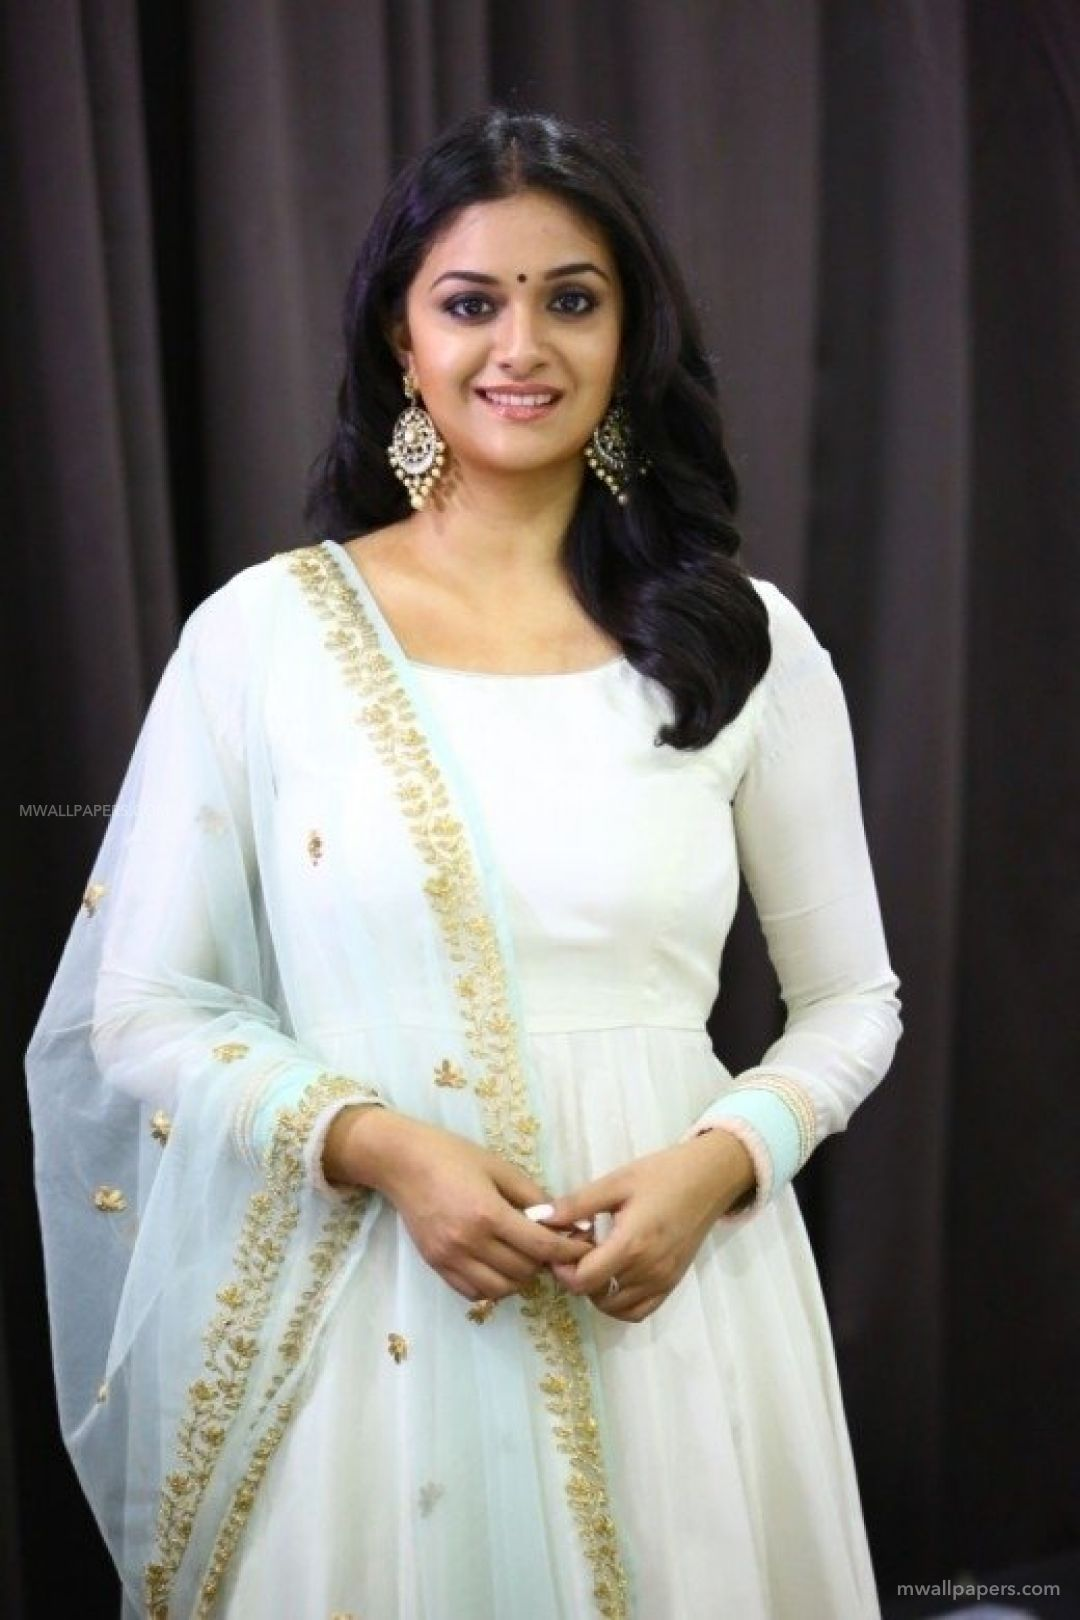 Keerthy Suresh HD Wallpapers (Desktop Background / Android / iPhone) (1080p, 4k) (58393) - Keerthy Suresh